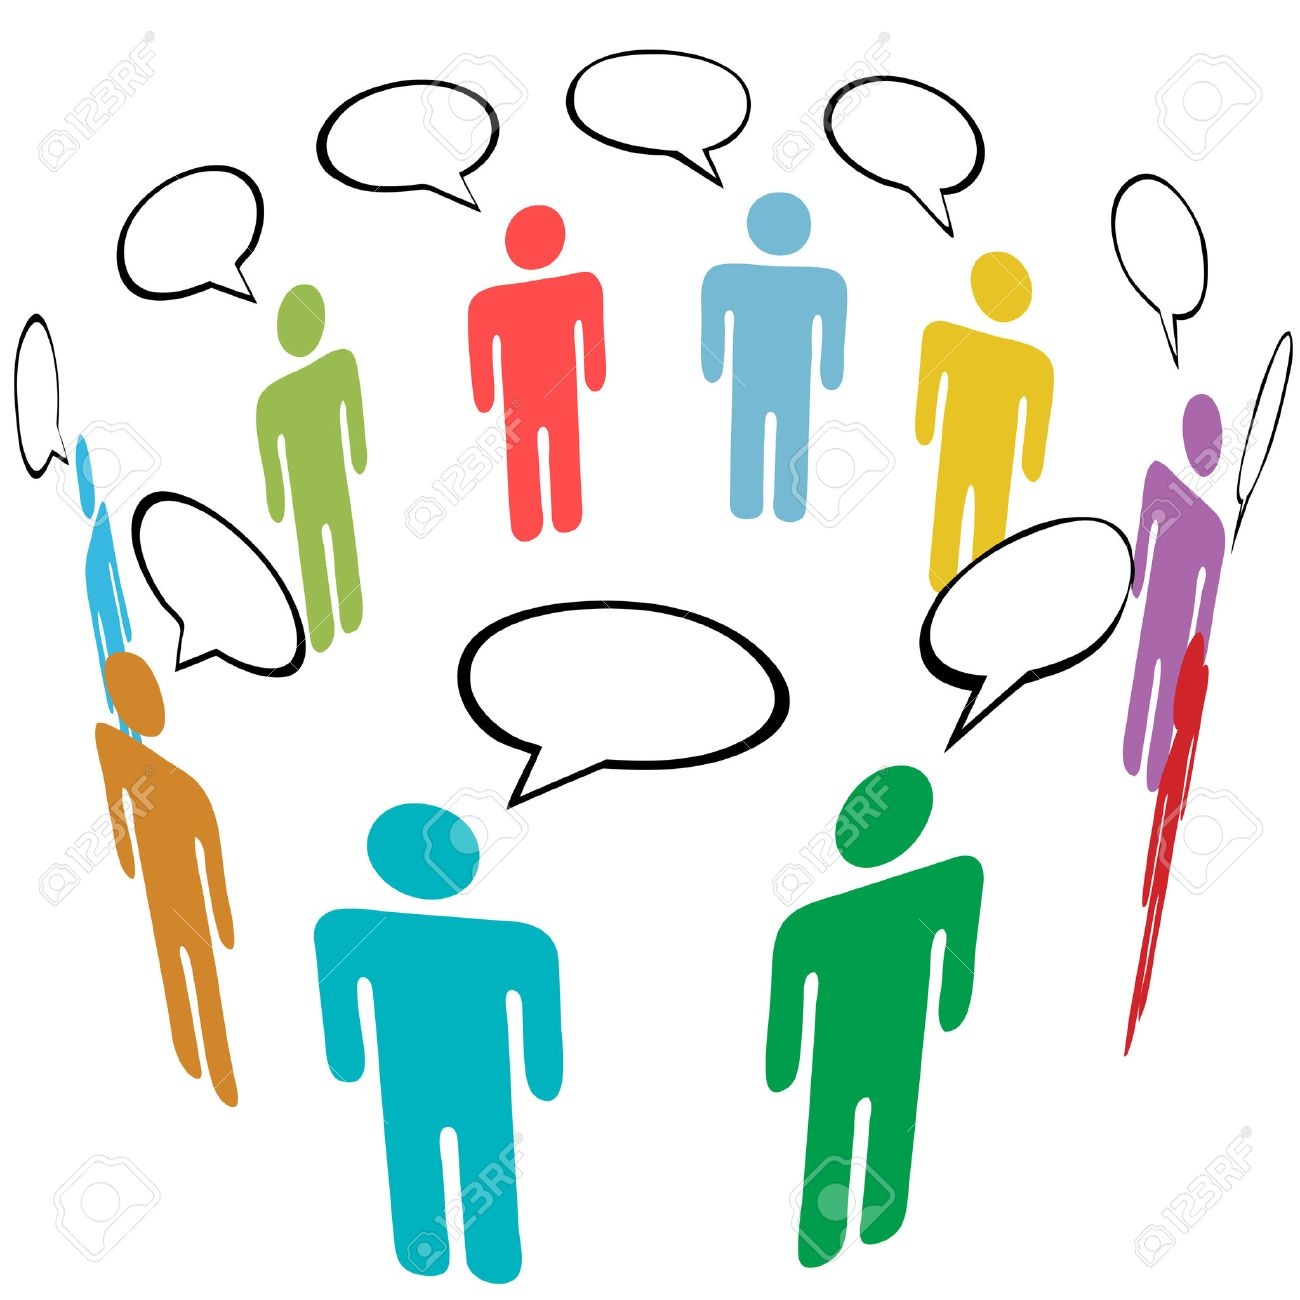 A group of stick figure symbol people talk in social media speech a group of stick figure symbol people talk in social media speech bubbles stock vector biocorpaavc Gallery